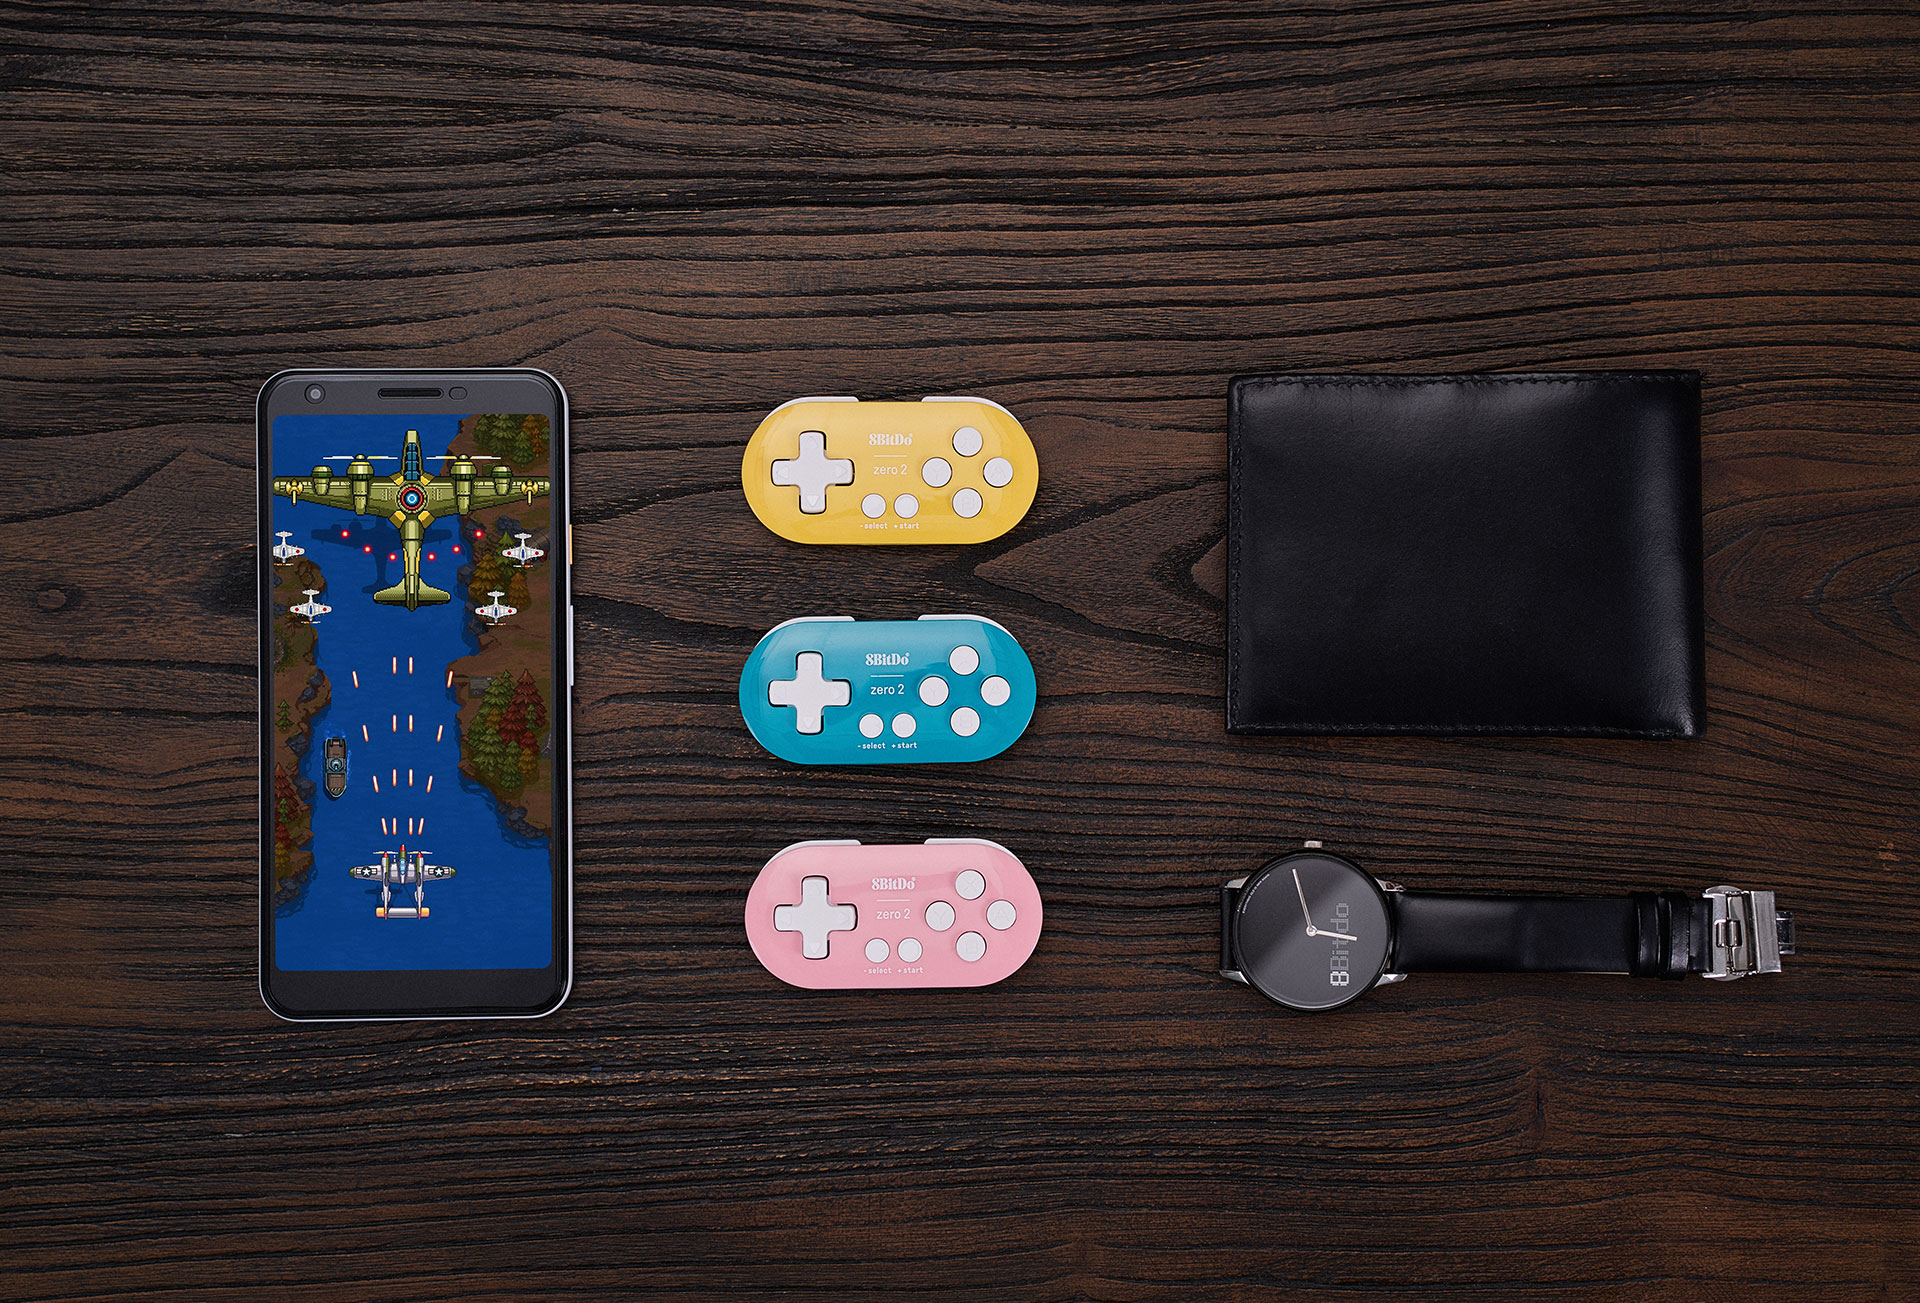 8Bitdo Zero 2 Mini Zero 2 is a key chain sized bluetooth controller to take with you wherever you go. It weighs just 20 grams, has a rechargeable lithium ion battery with 8 hours of game time and is compatible with Switch, PC, macOS and Android!